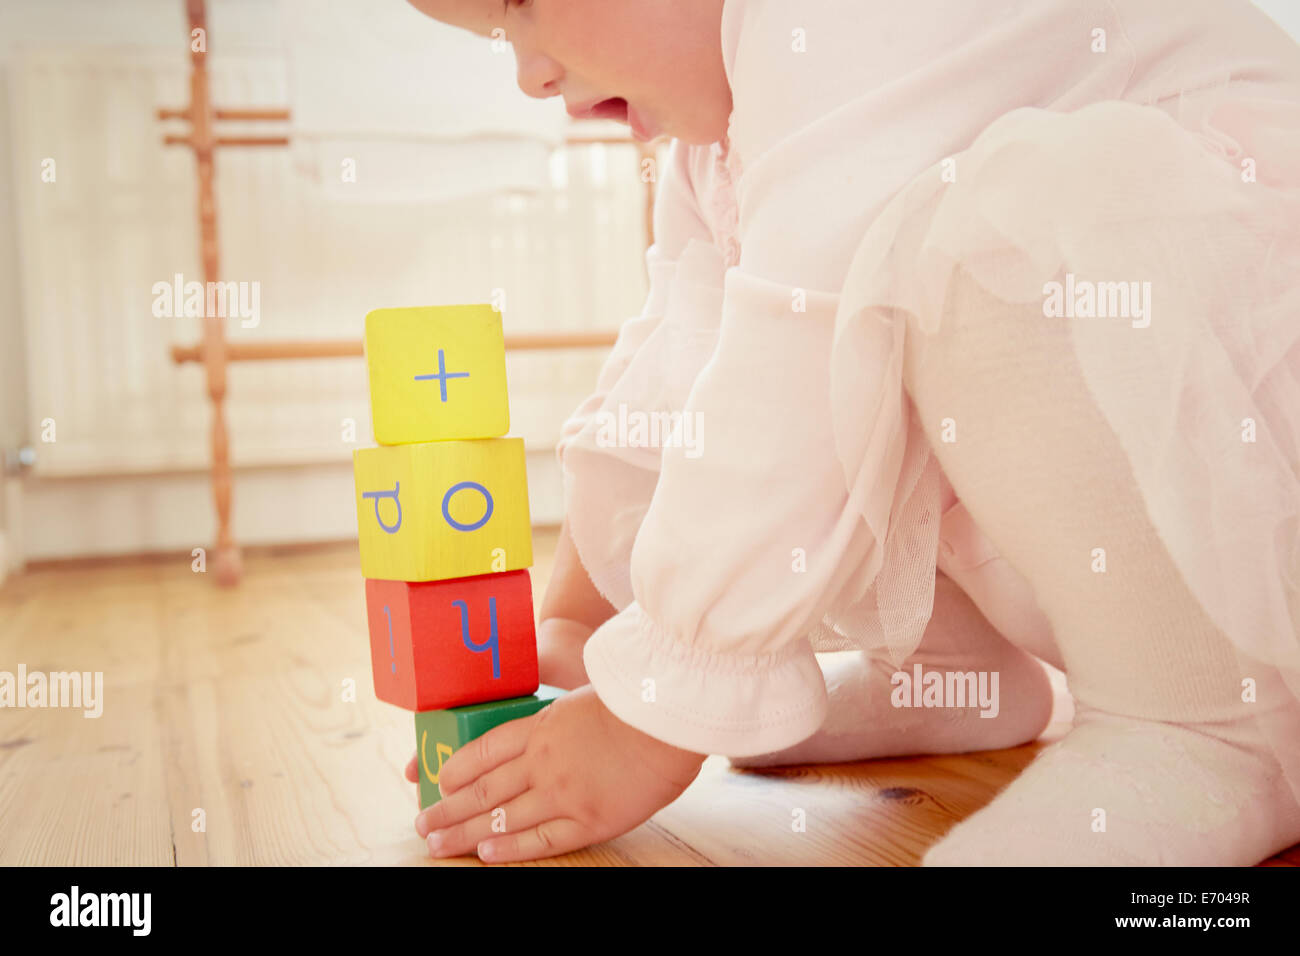 Cropped shot of baby girl building stack with building blocks - Stock Image